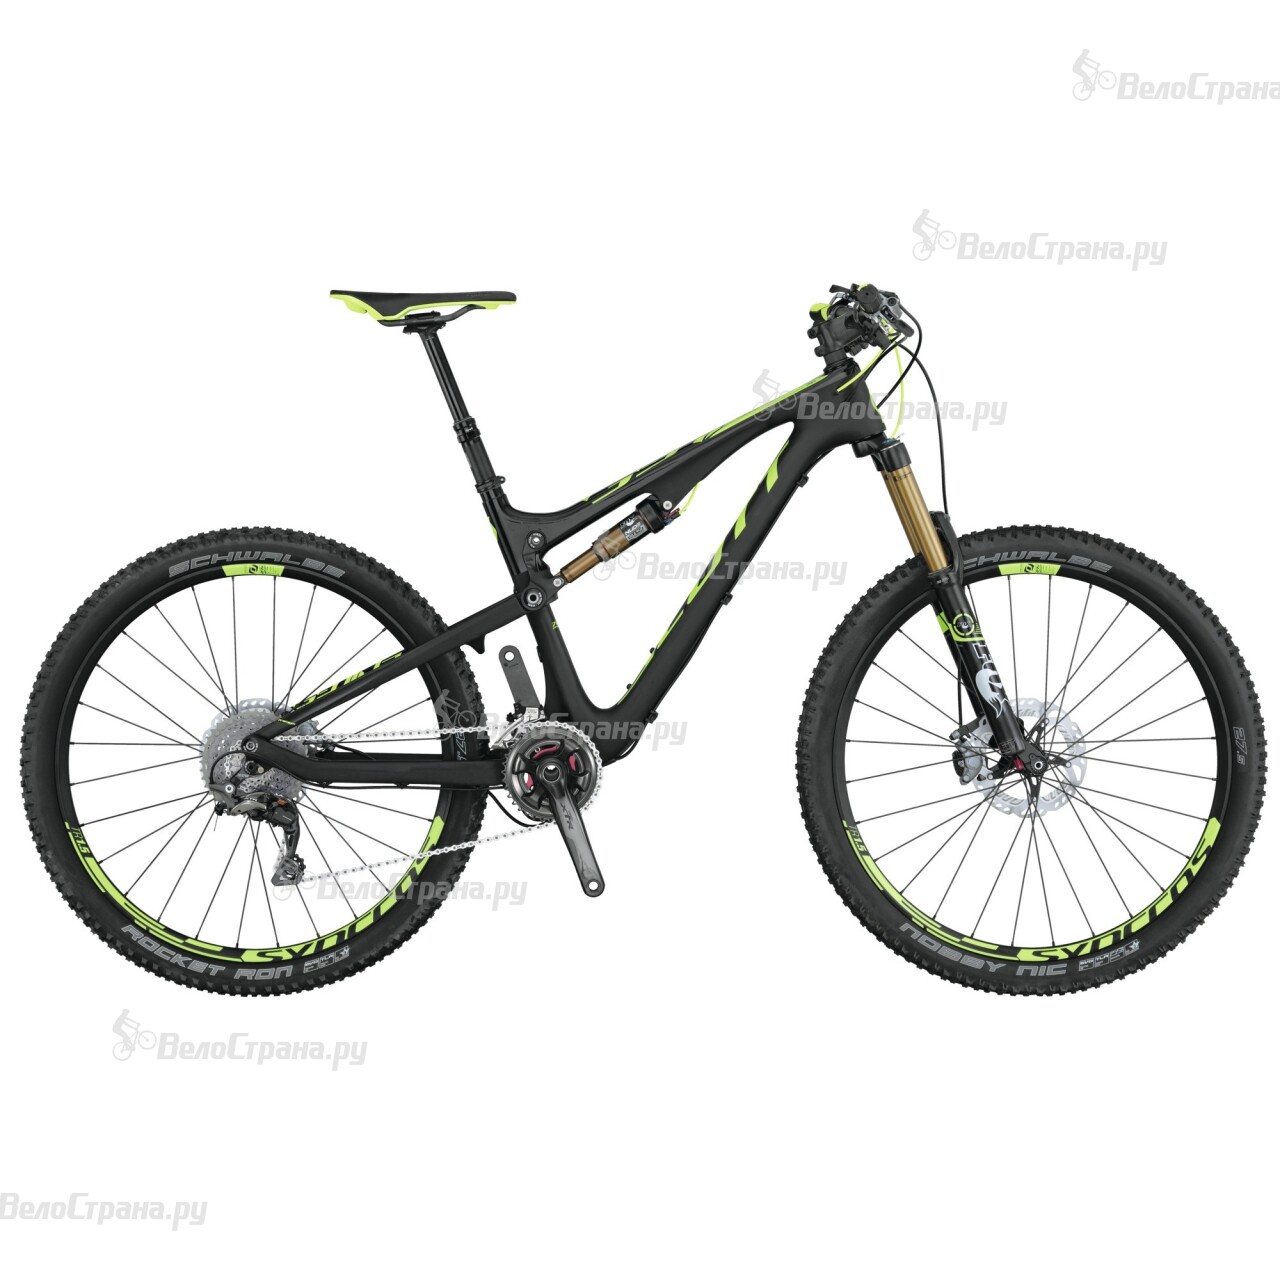 Велосипед Scott Genius 700 Premium (2015) велосипед scott contessa genius 700 2015